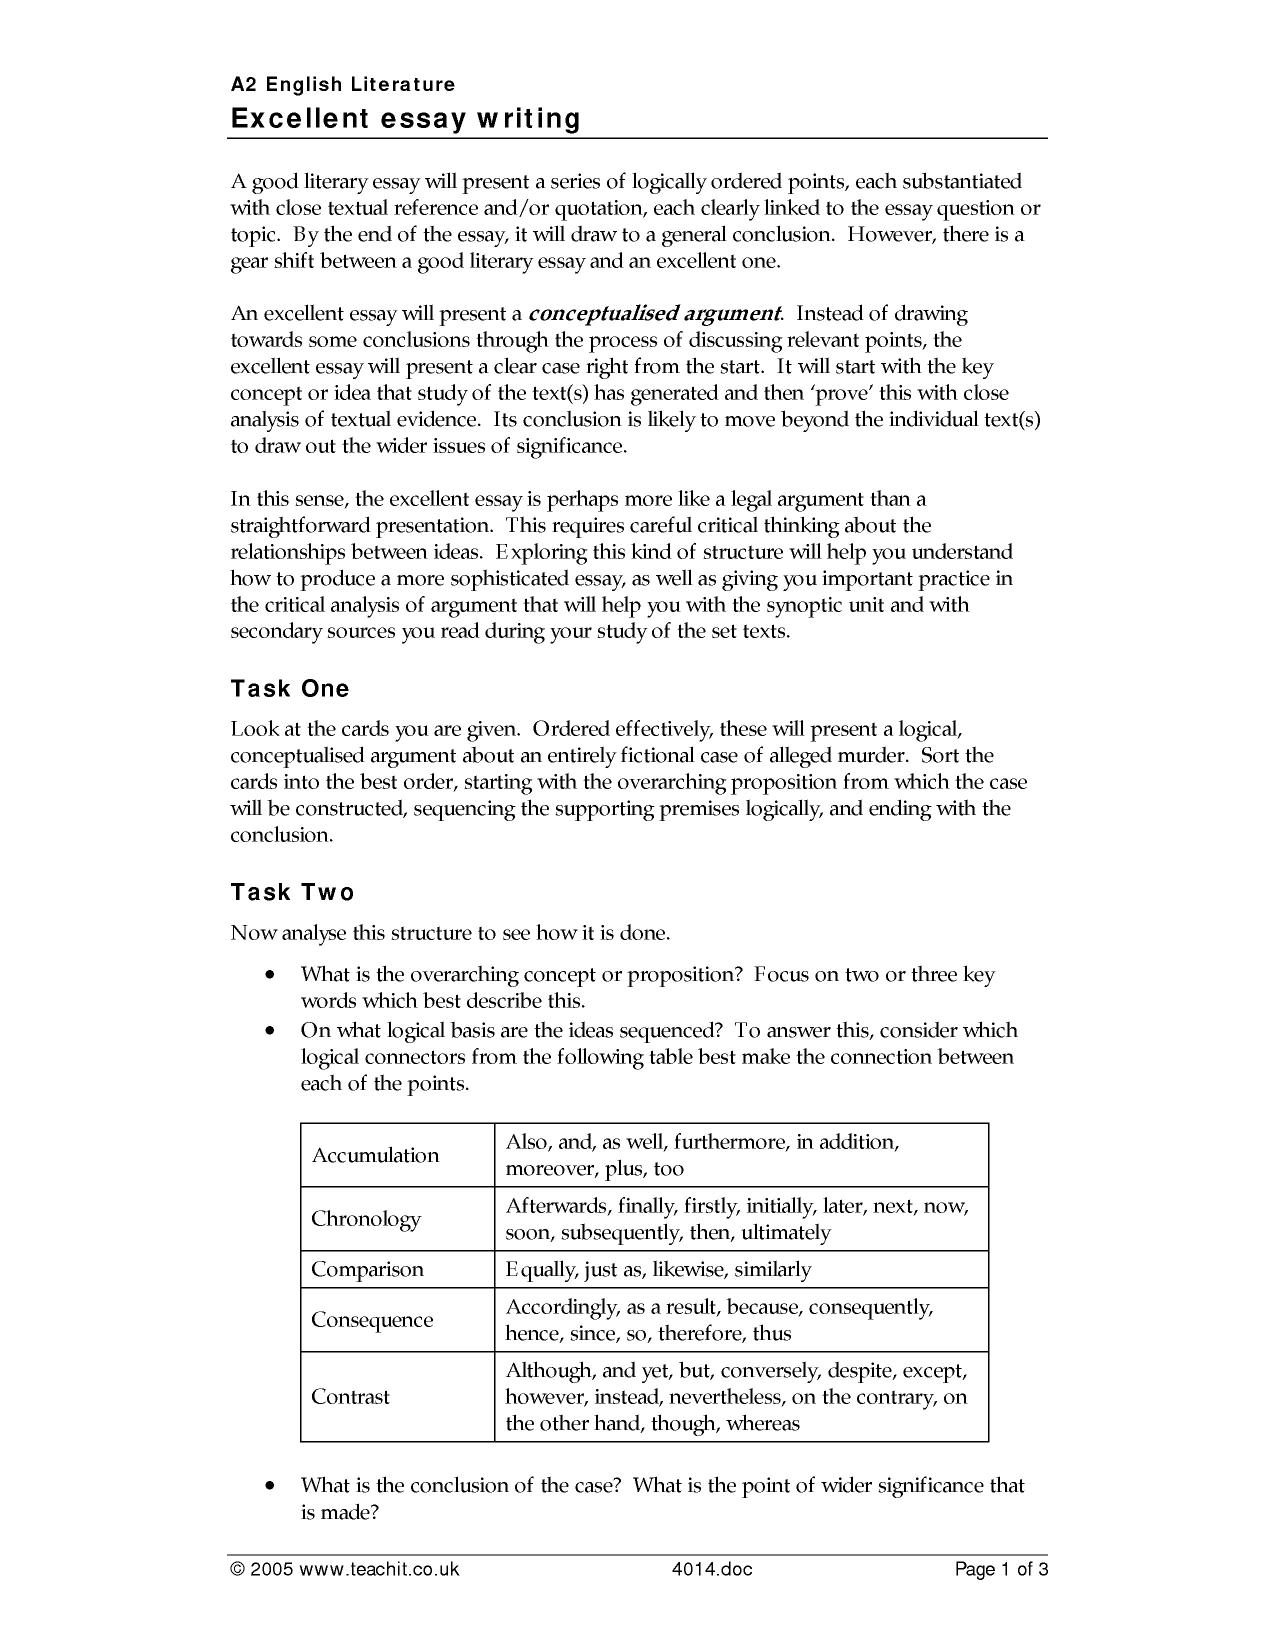 structure of english essay There are various types of academic essays including expository, descriptive, argumentative and narrative while every type of essay is unique and calls for different content, length and style, a majority of essays have a similar structure the five-paragraph essay is the basic approach to essay.